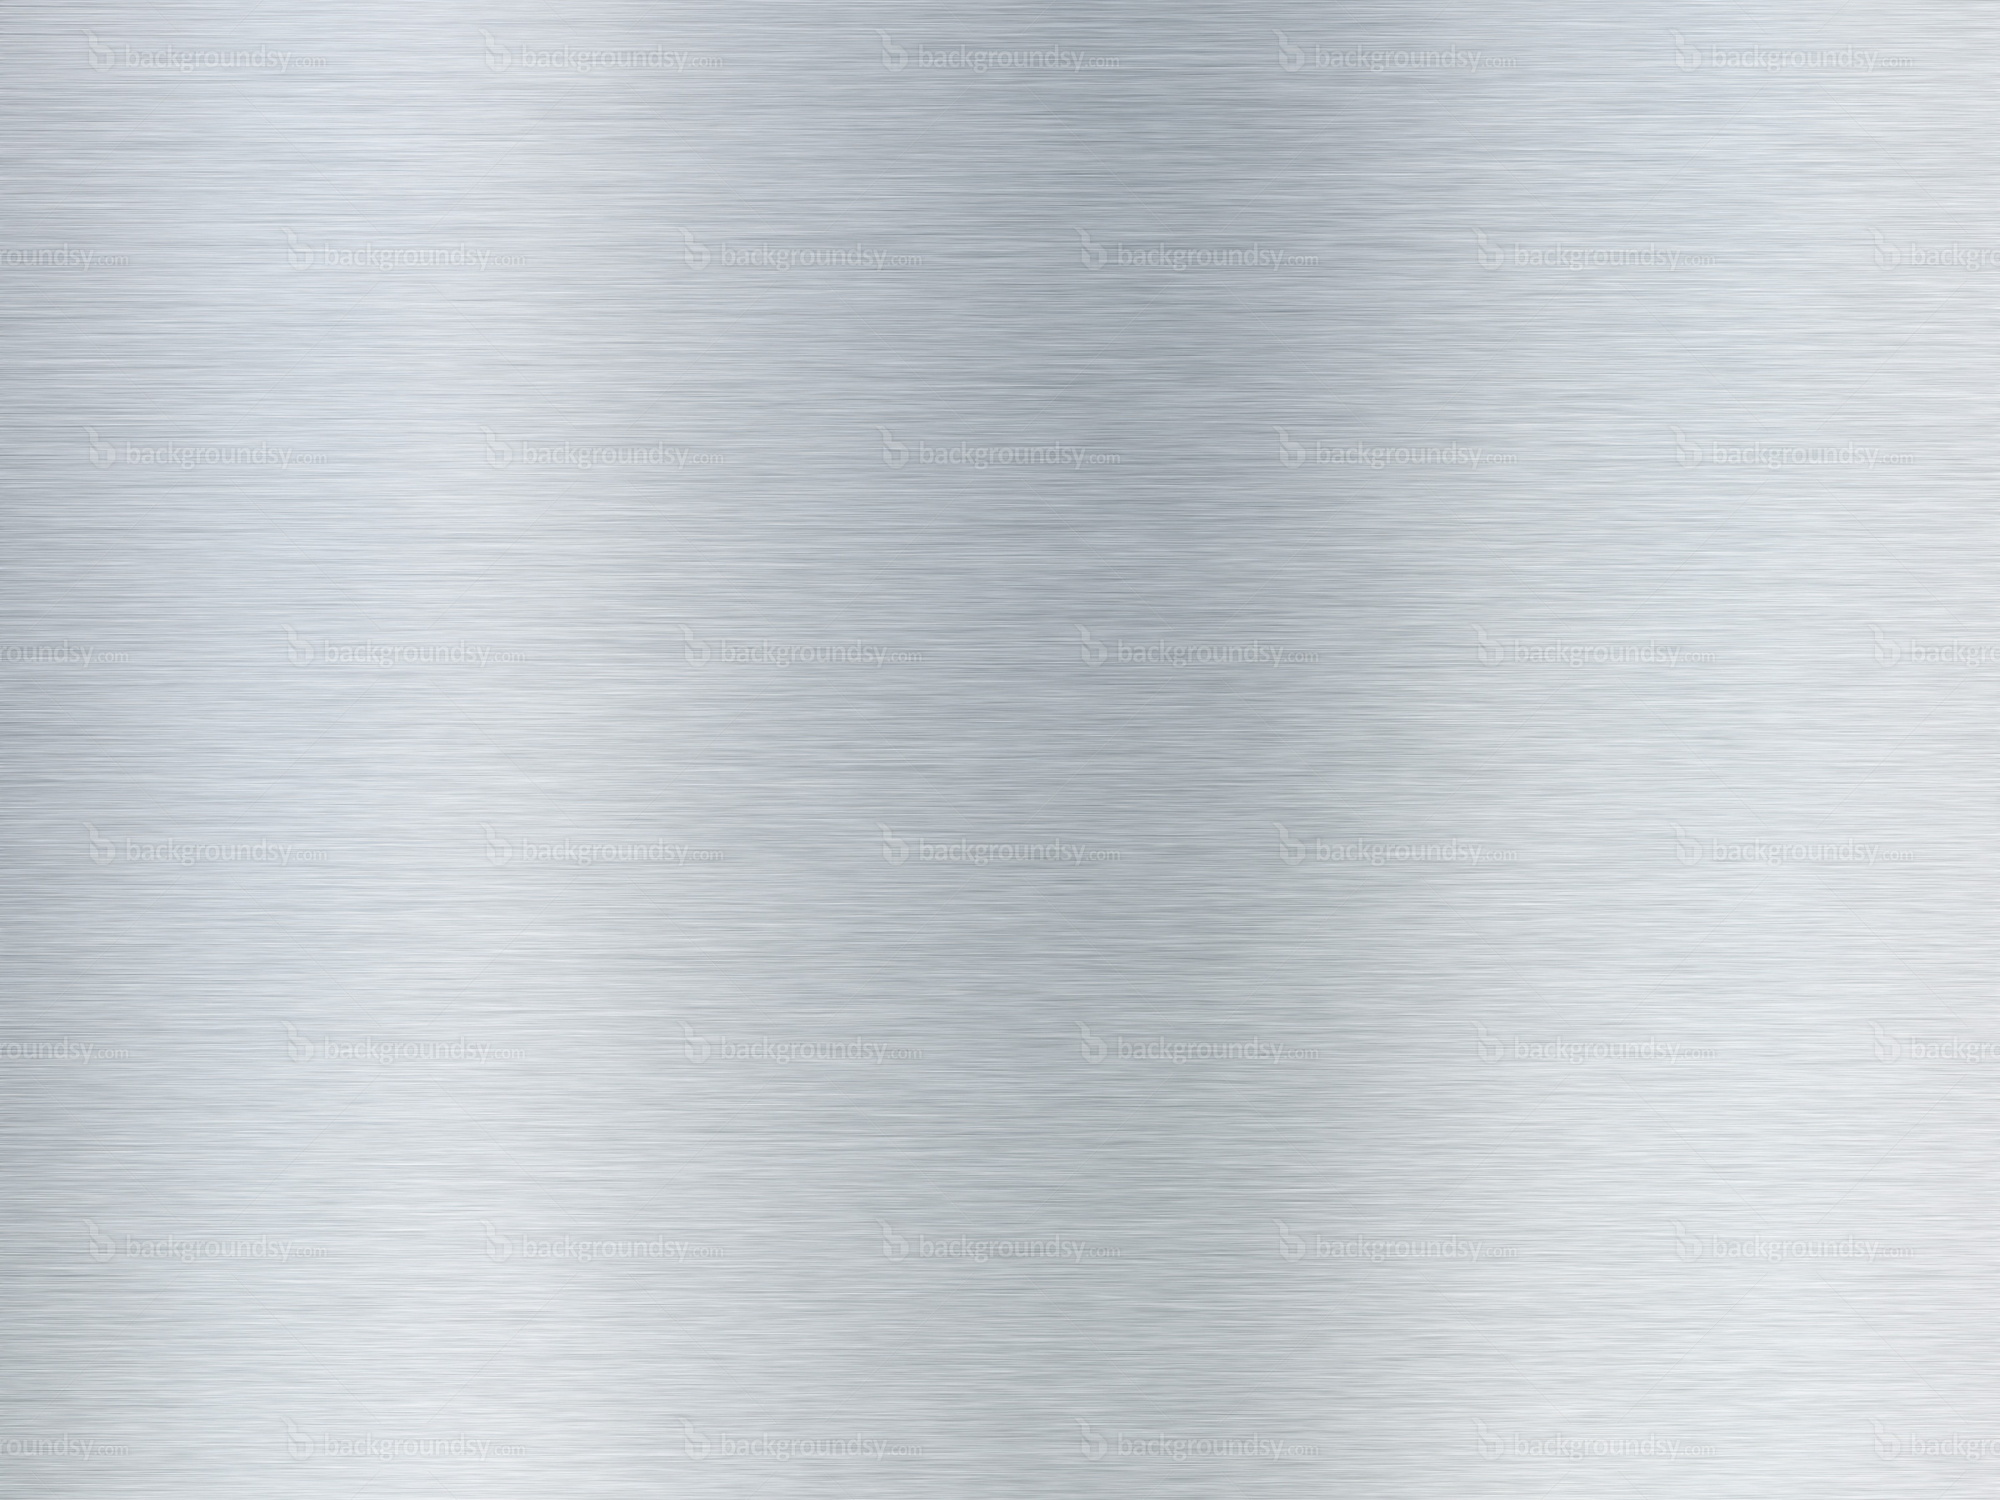 6 2018 >> Silver metal texture | Backgroundsy.com